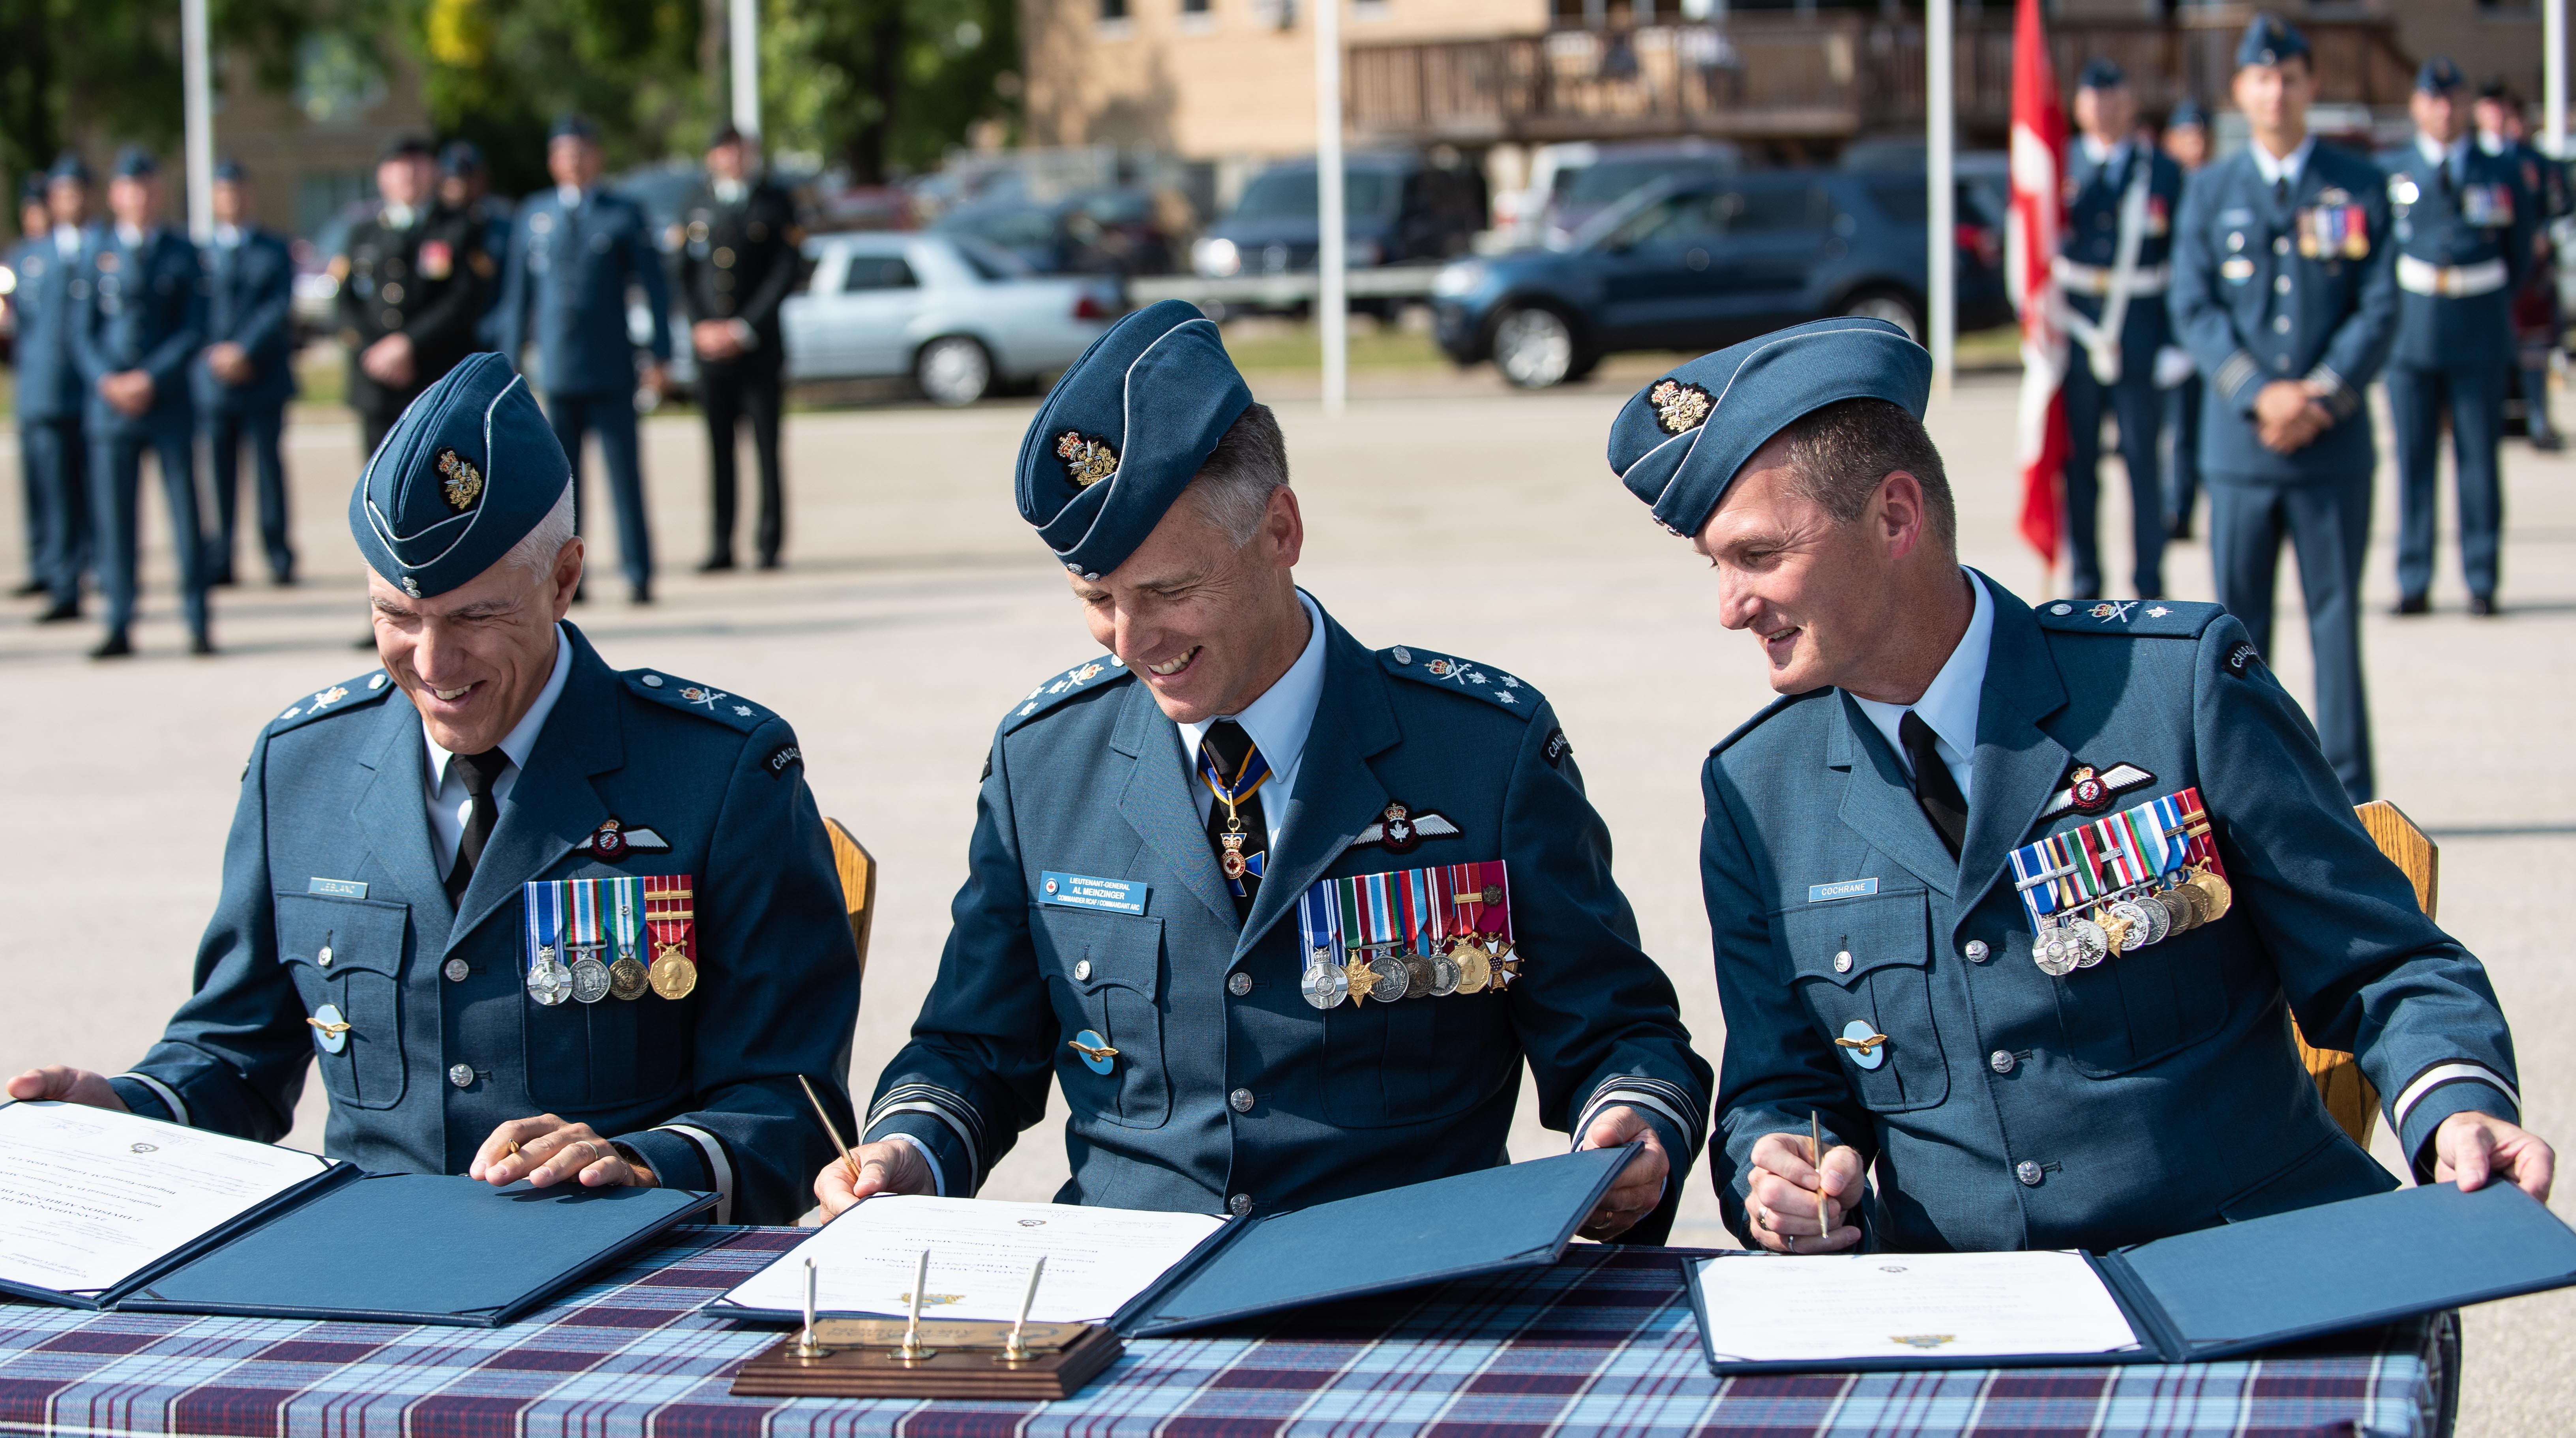 Three men in military uniforms, with medals on their tunics, sit behind a table outdoors with documents in folders in front of them.